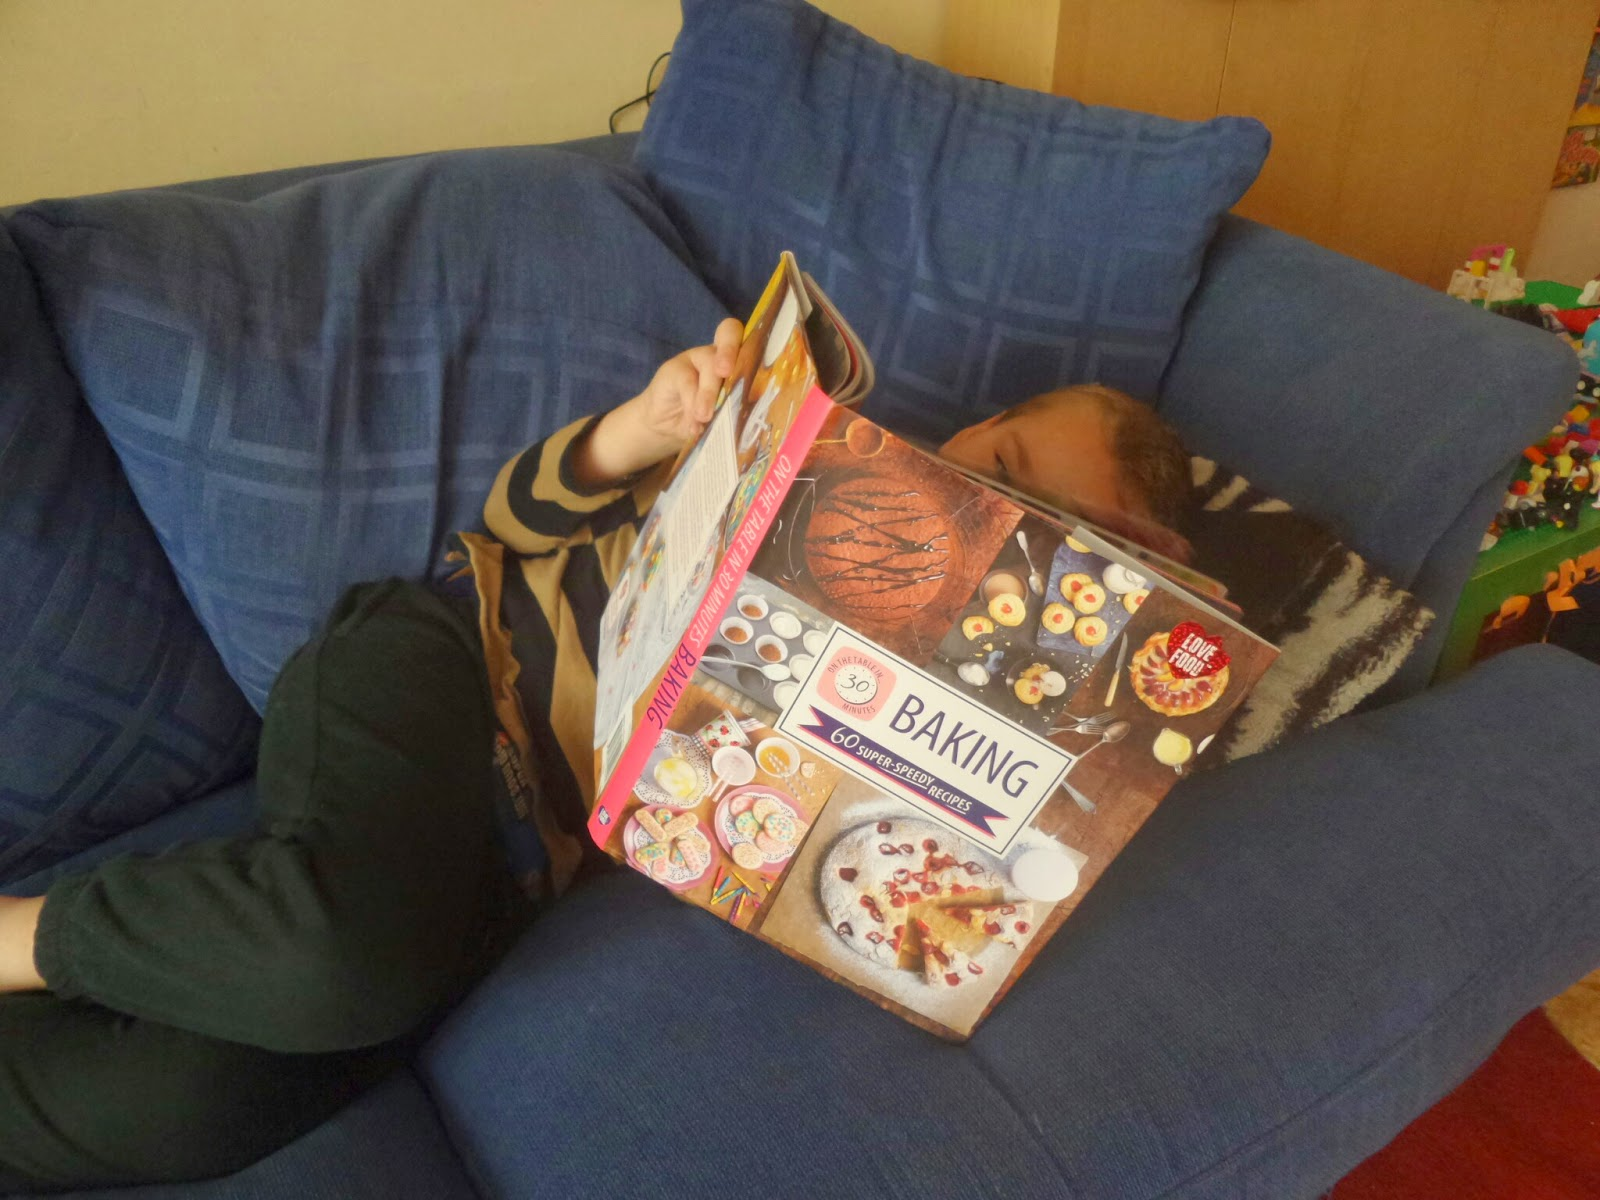 Big Boy reading On The Table in 30: Baking - Parragon Book #Review